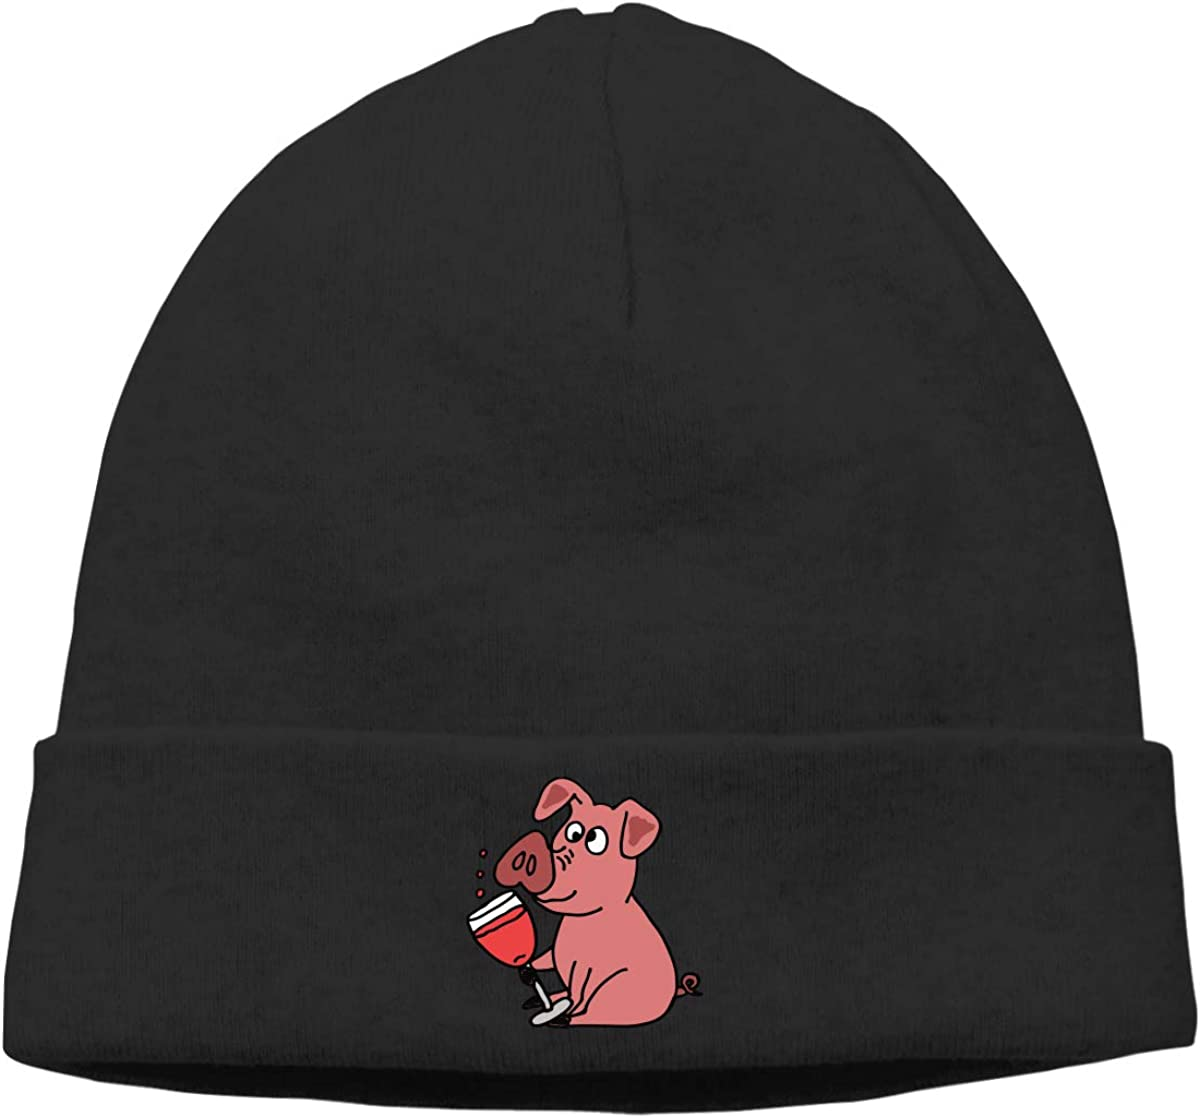 Stretchy /& Soft Winter Cap Pig Drinking Wine Cartoon Men Womens Solid Color Beanie Hat Thin